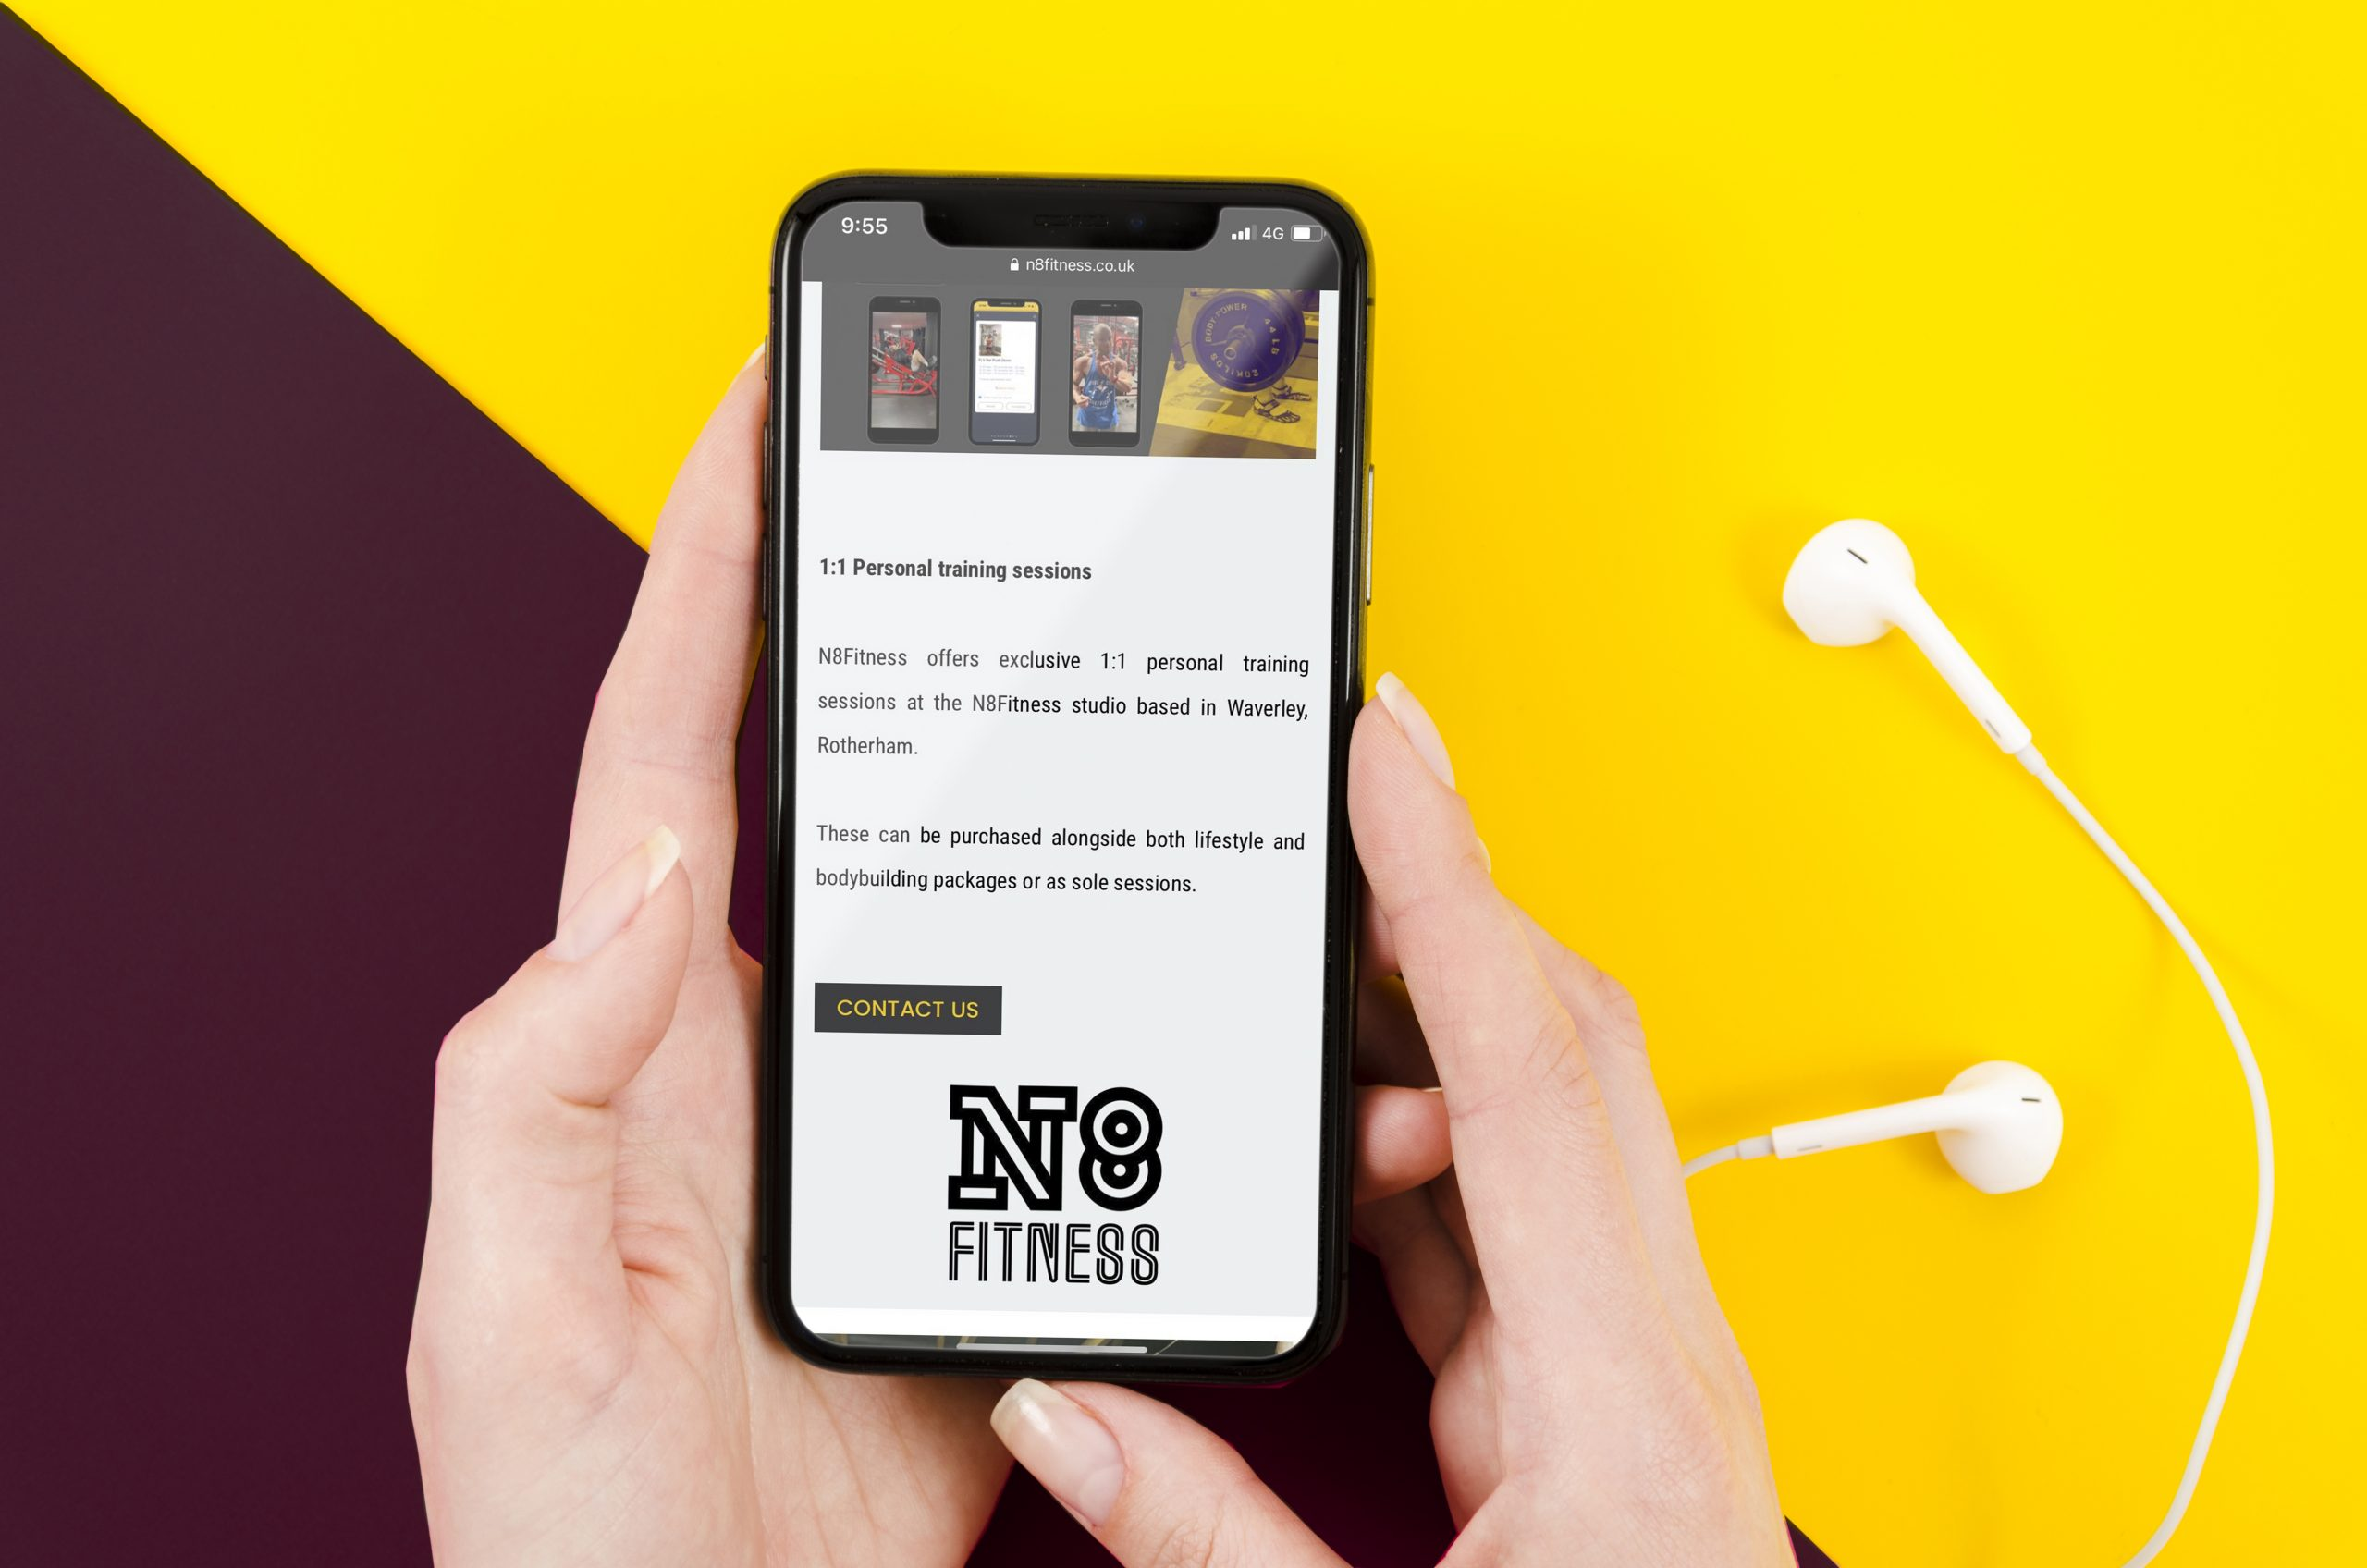 N8 Fitness project, website design, marketing and branding